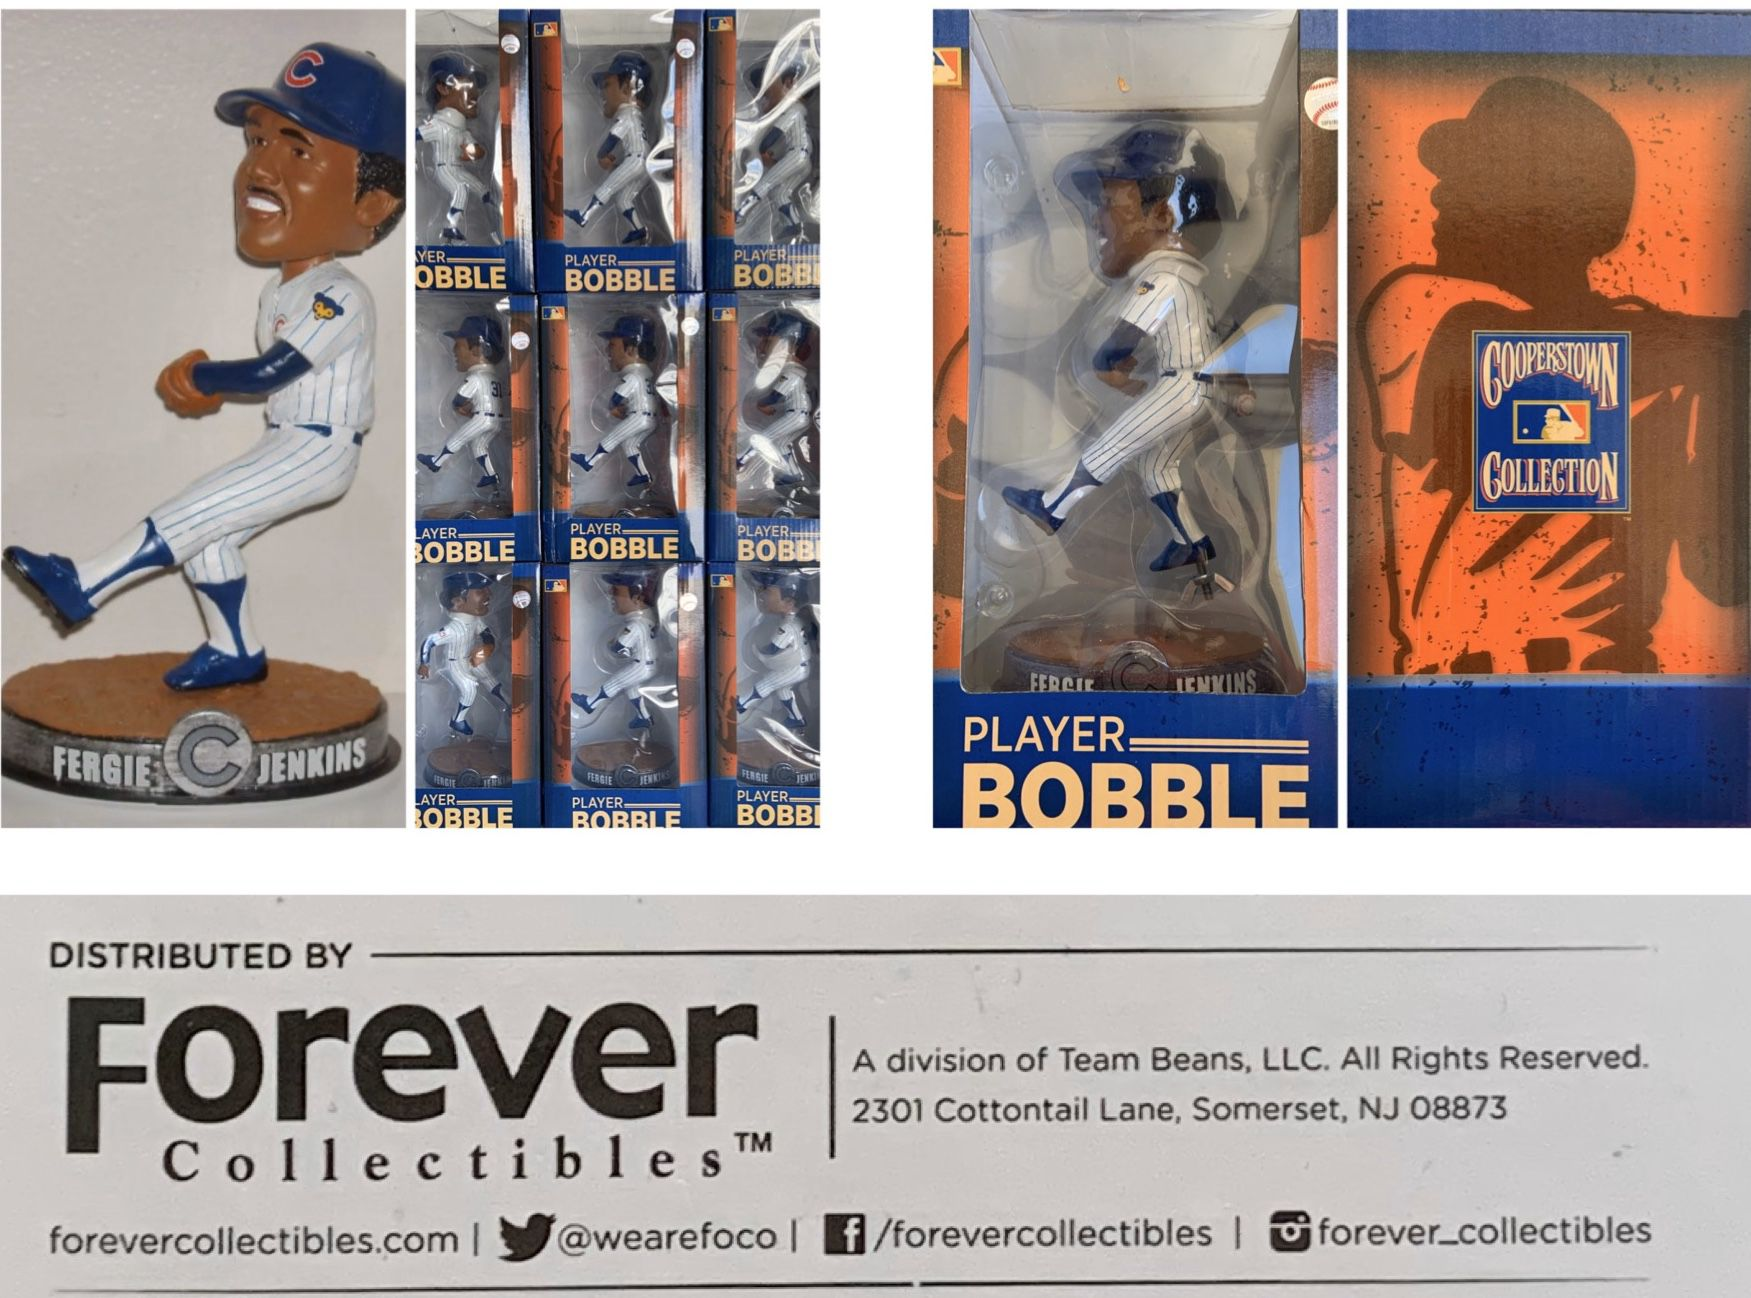 """Chicago Cubs National Baseball Hall of Fame/Canadian Baseball Hall of Fame Pitcher FERGIE JENKINS 7"""" PLAYER BOBBLEHEAD licensed by MLB & Cooperstown"""